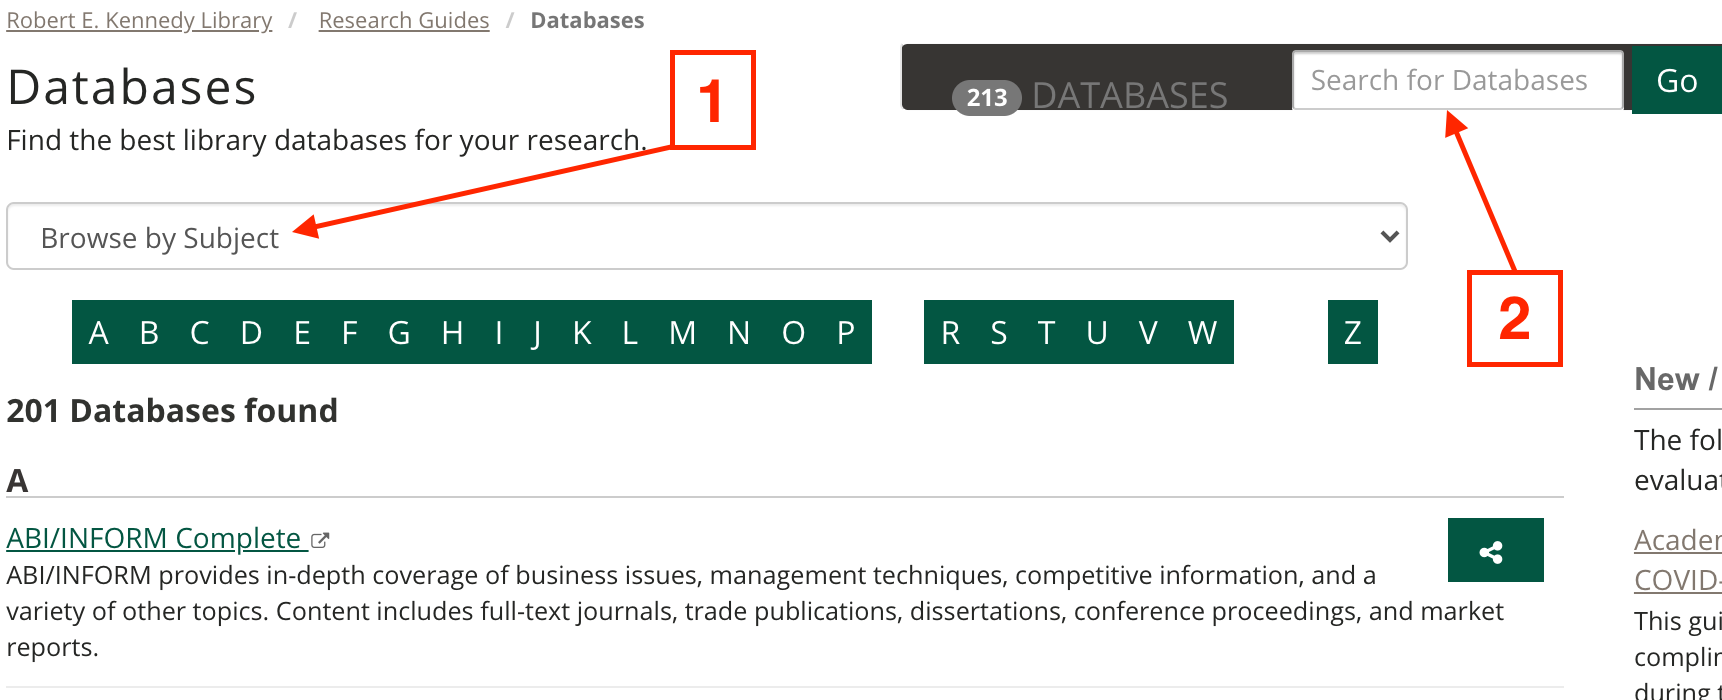 This is a screenshot of the library's list of databases with arrows pointing to the browse by subject drop-down list and search for database function both located at the top of the page.